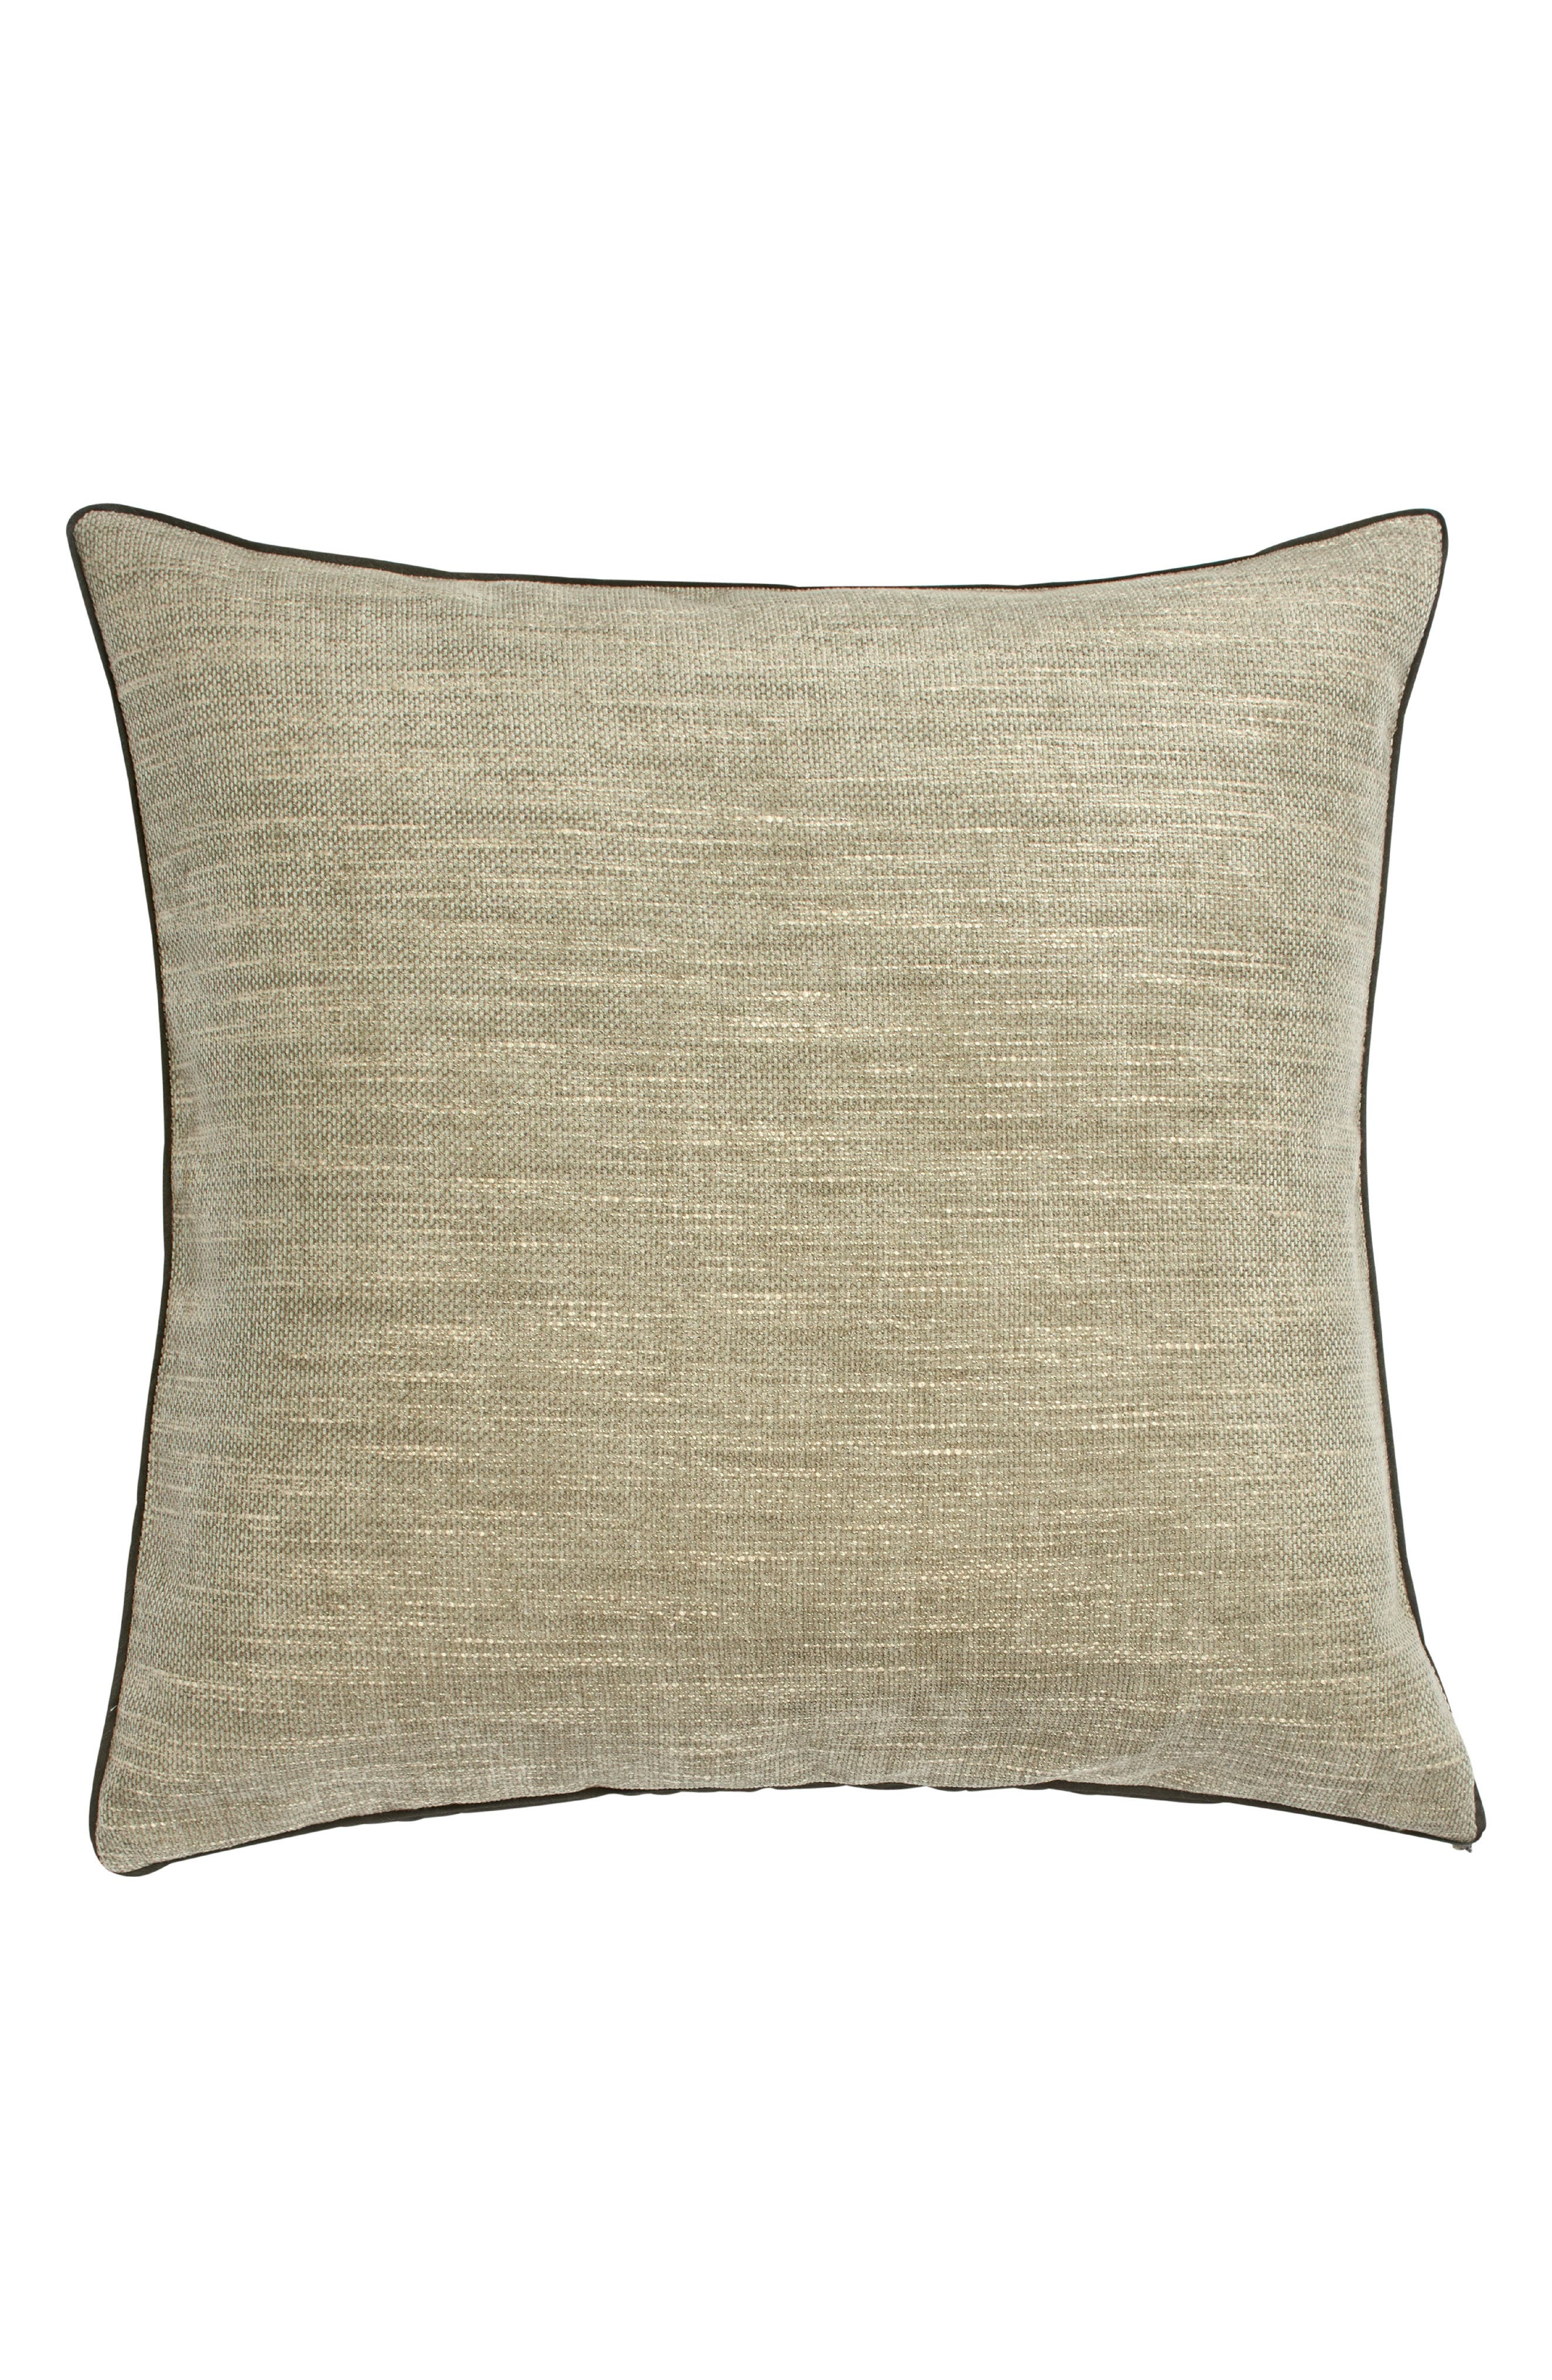 Lotus Accent Pillow,                             Main thumbnail 1, color,                             TAUPE